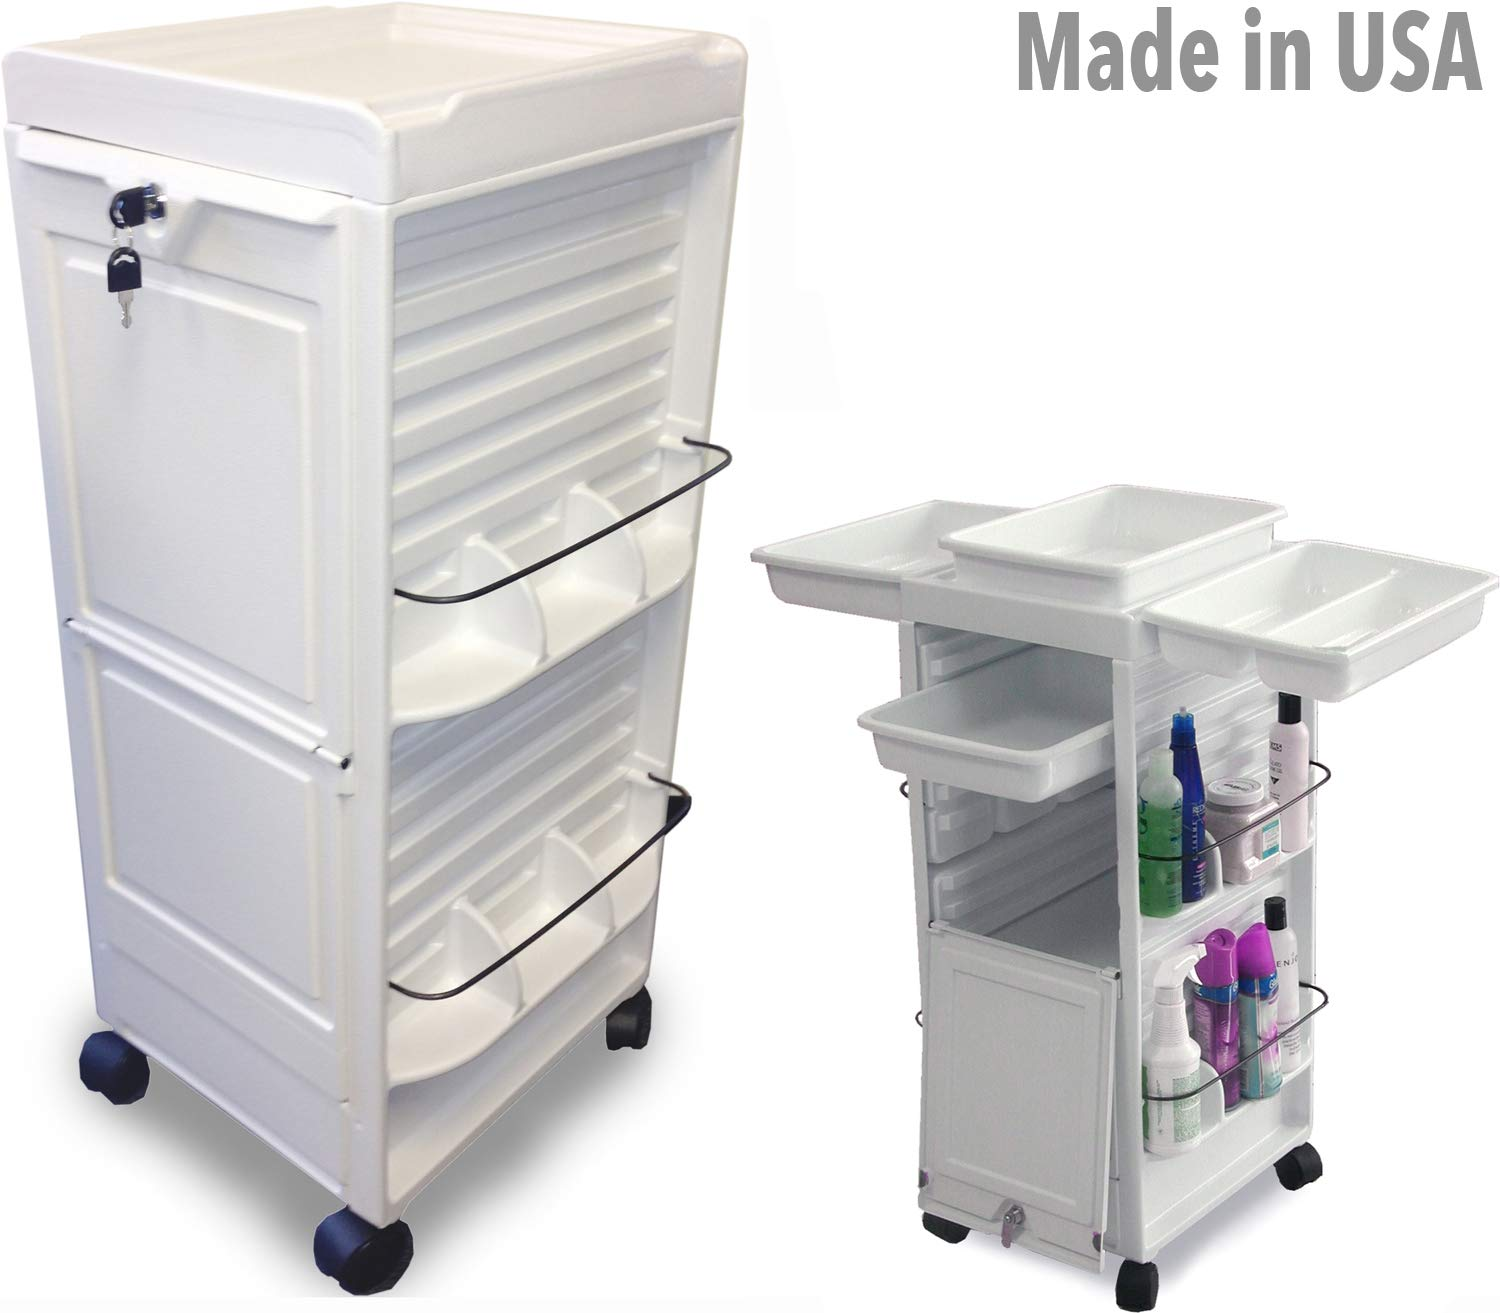 N20E-P M Medical Dental Physician White Lockable Roll-About Utility Cart Made in USA